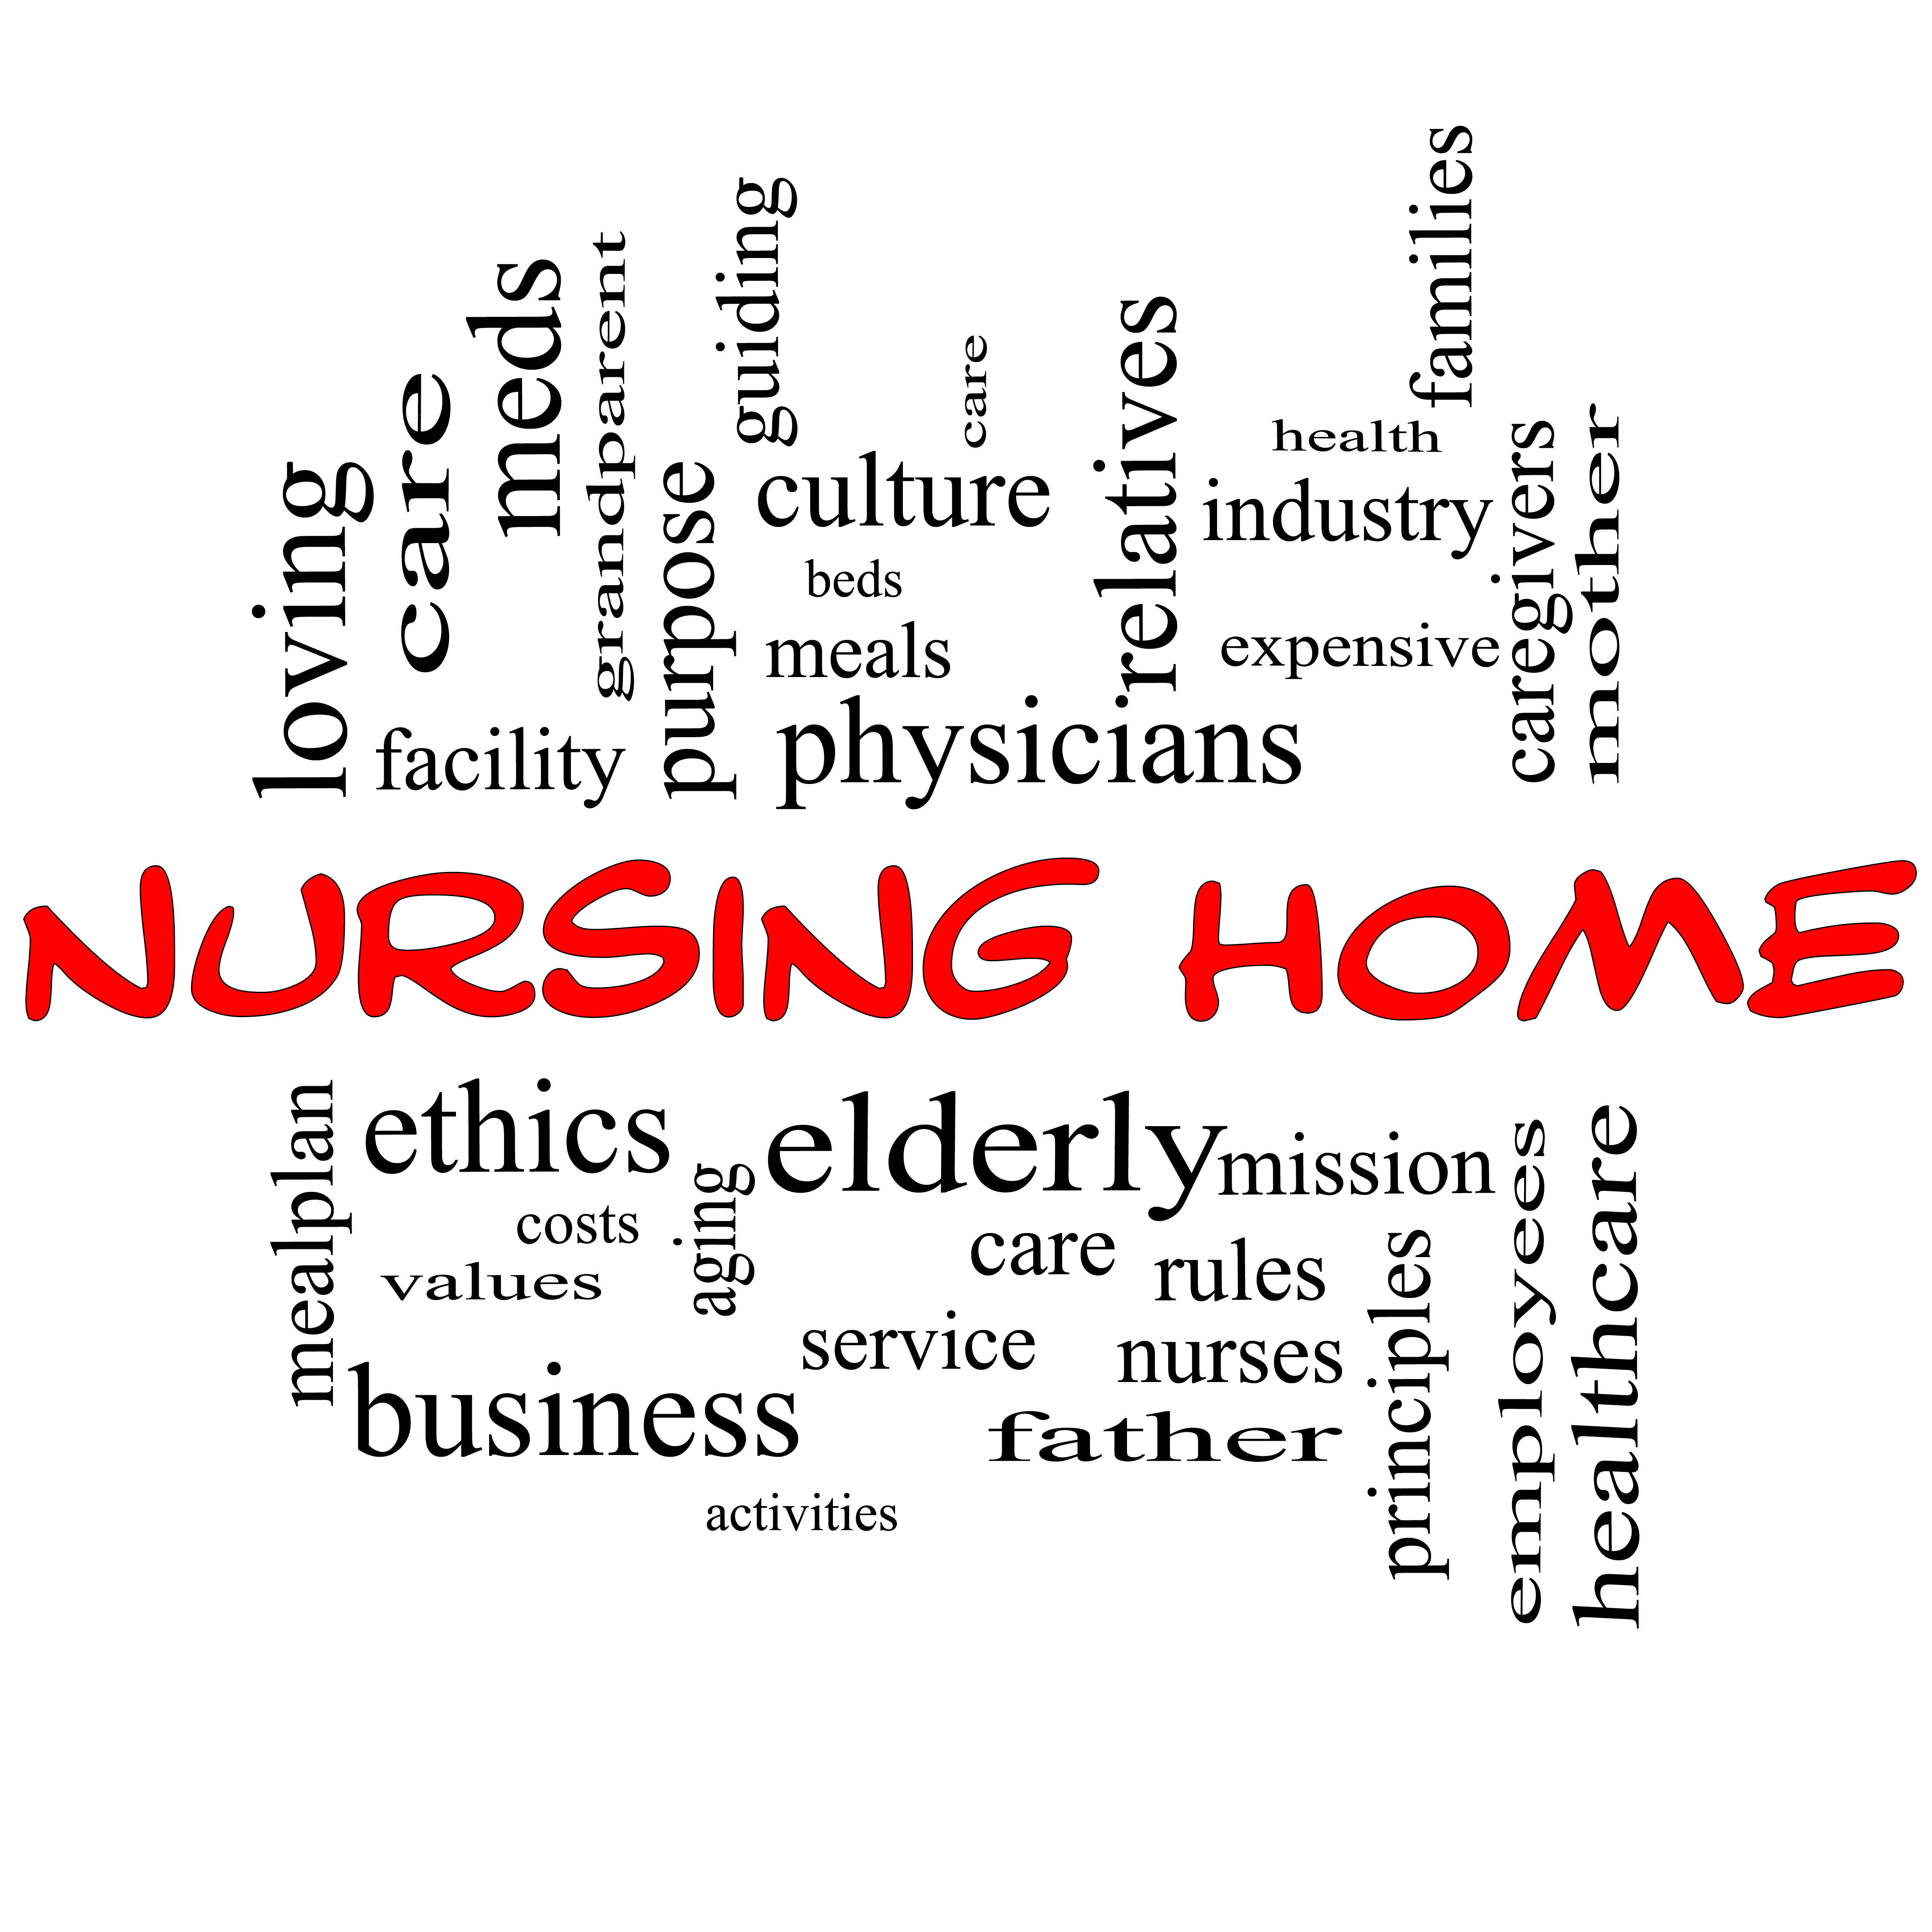 patient abuse in nursing facilities essay Nursing home abuse: disturbing statistics on patient  related to nursing home abuse from masters in health  that not all nursing facilities are abuse .